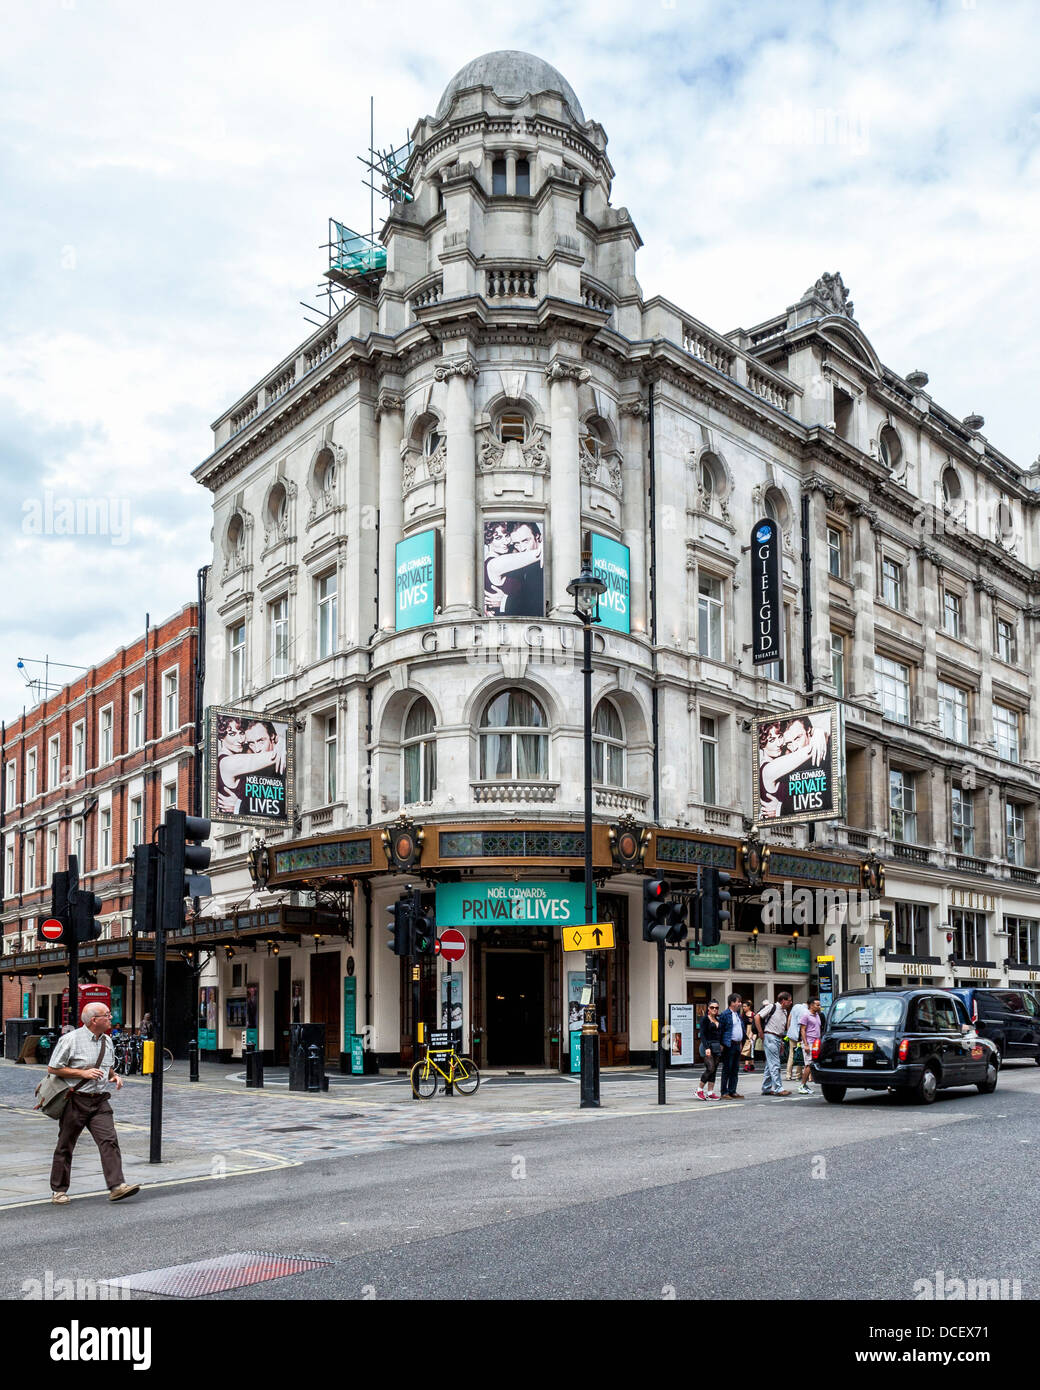 The Gielgud theatre showing the play 'Private Lives' - Shaftesbury Avenue, West End, London, W1, - Stock Image